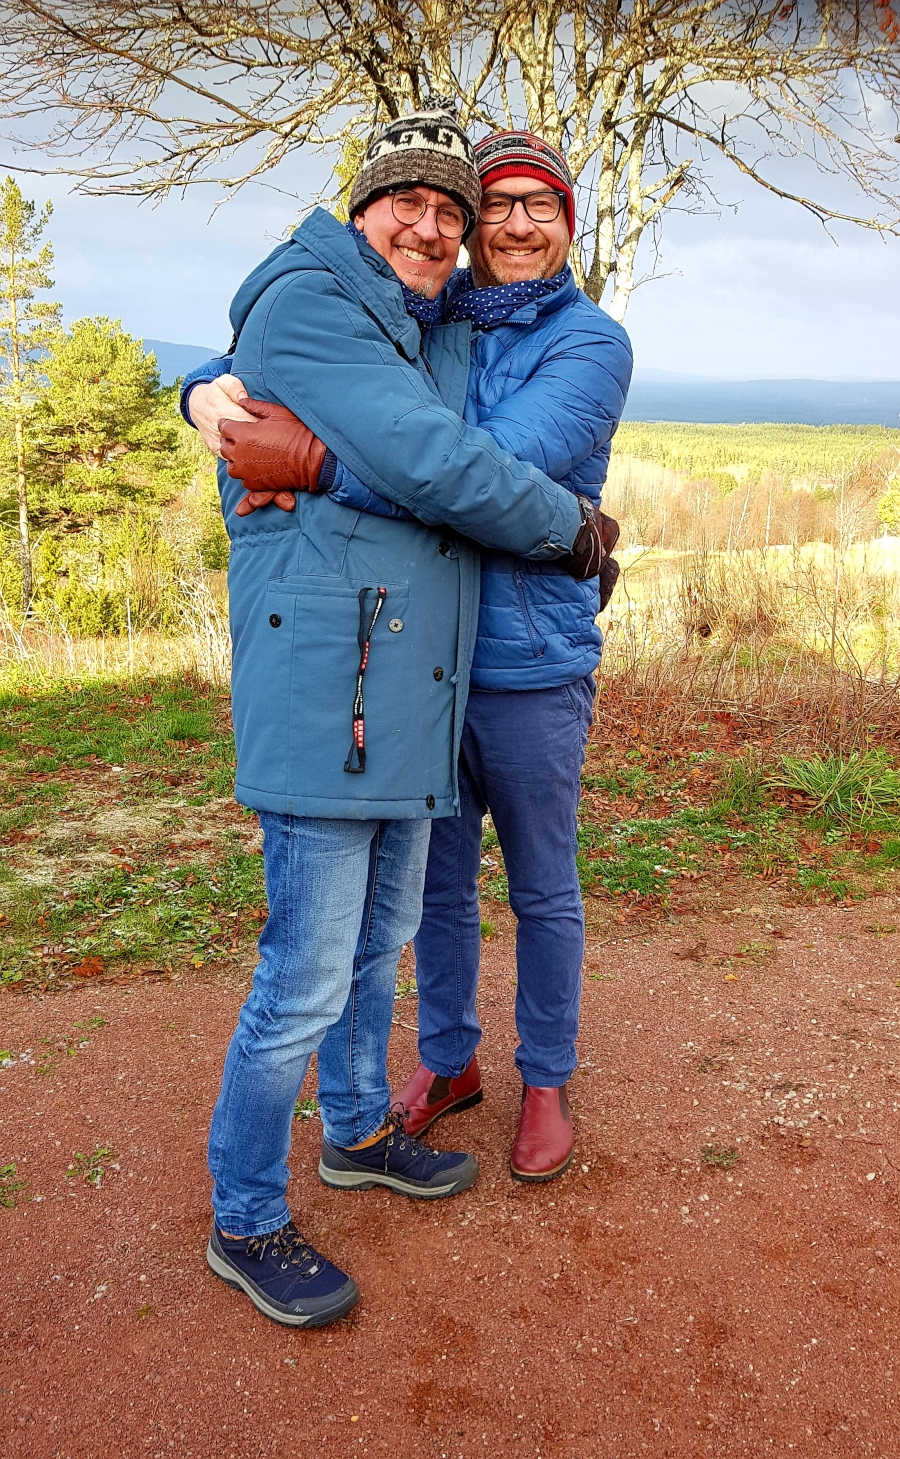 Keith Begg and his husband Cristian Pettersson are pictured in Dalarna County, north of Stockholm.